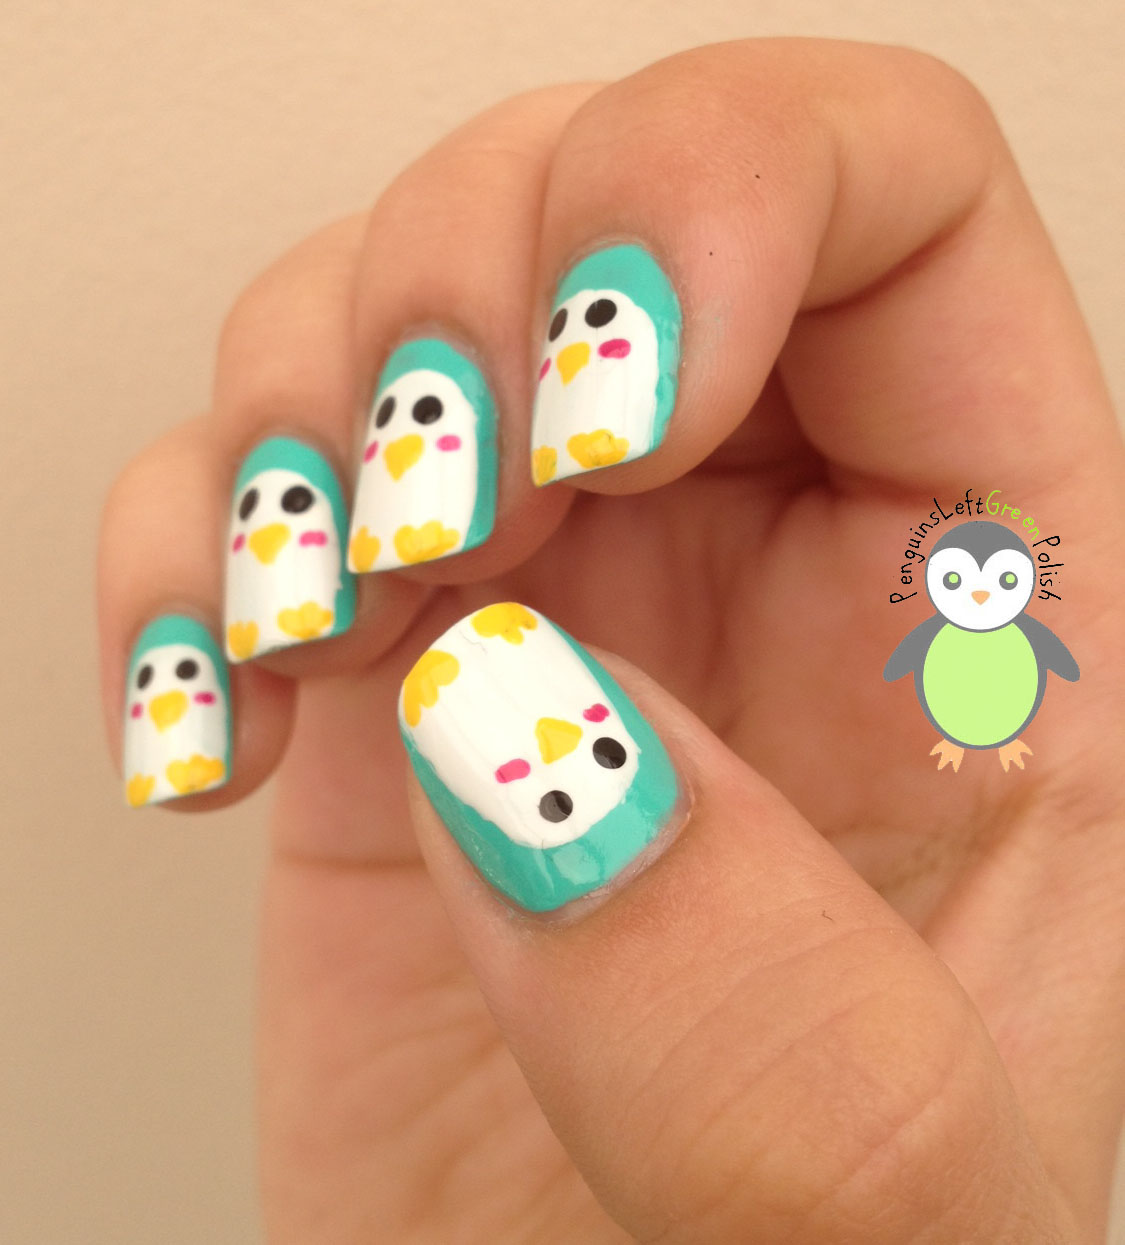 Penguin Nail Art Designs: Crochet Penguin Nail Art!